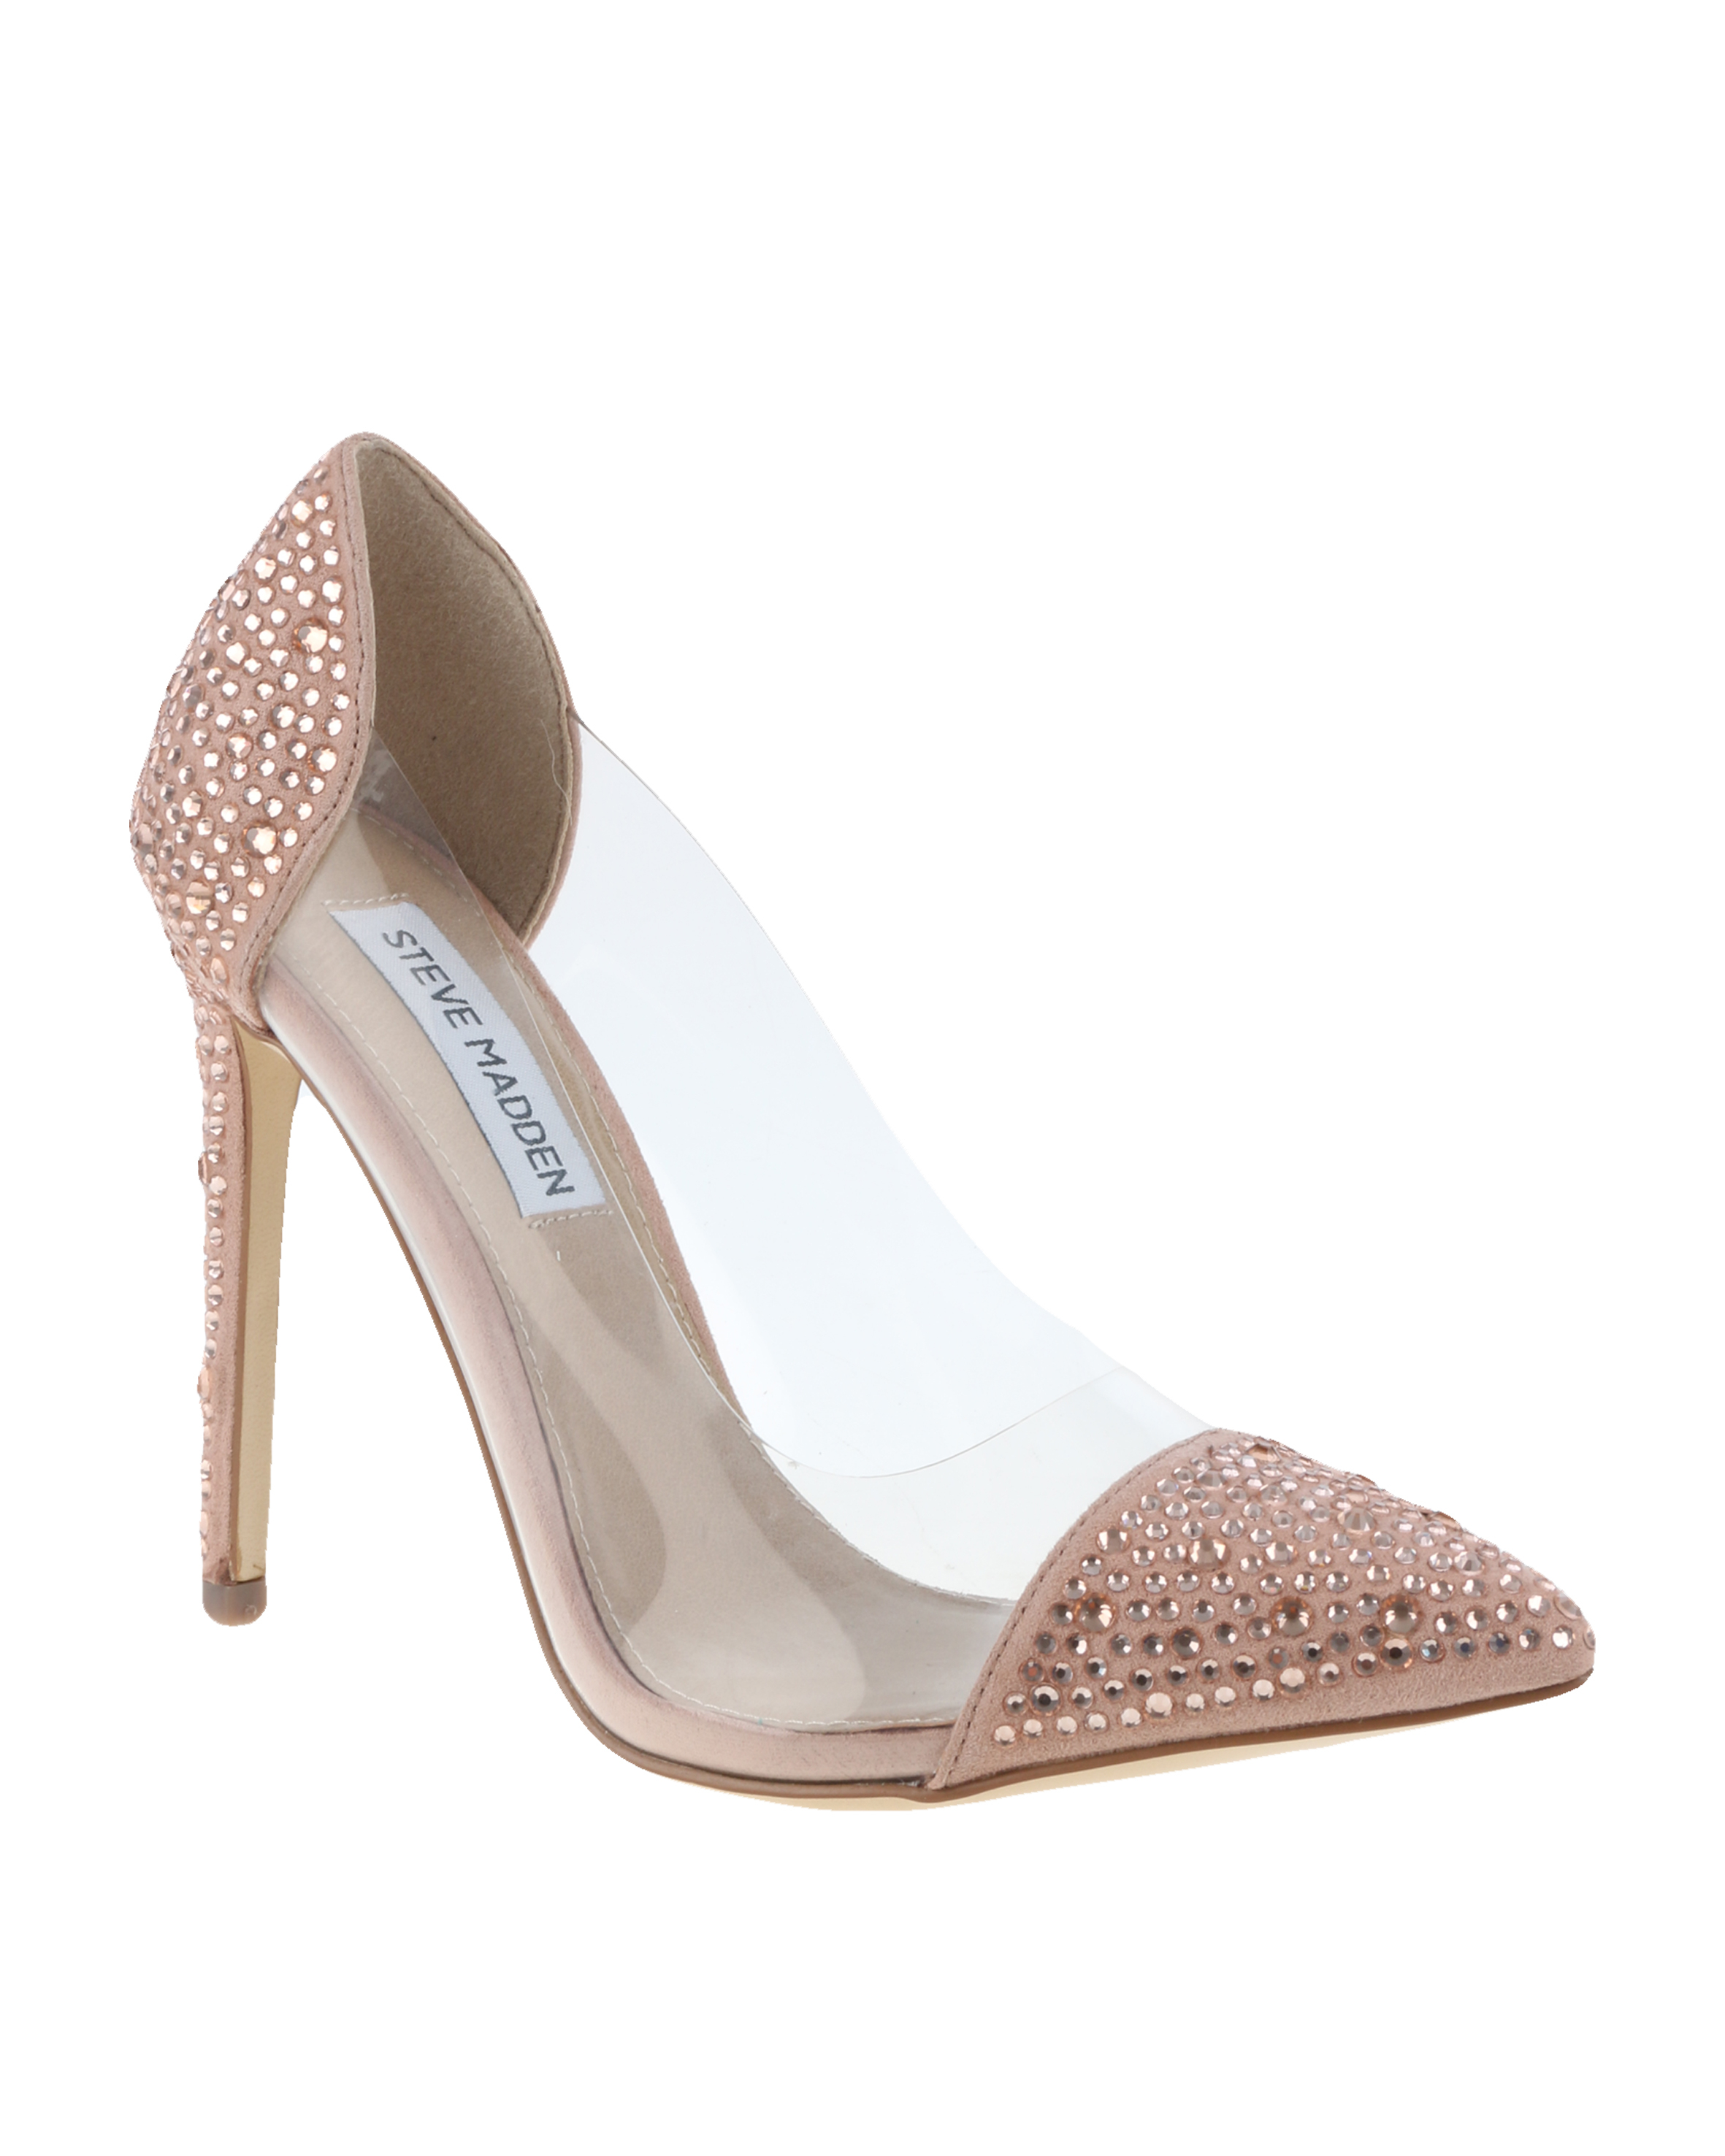 Steve Madden Shoes Online South Africa